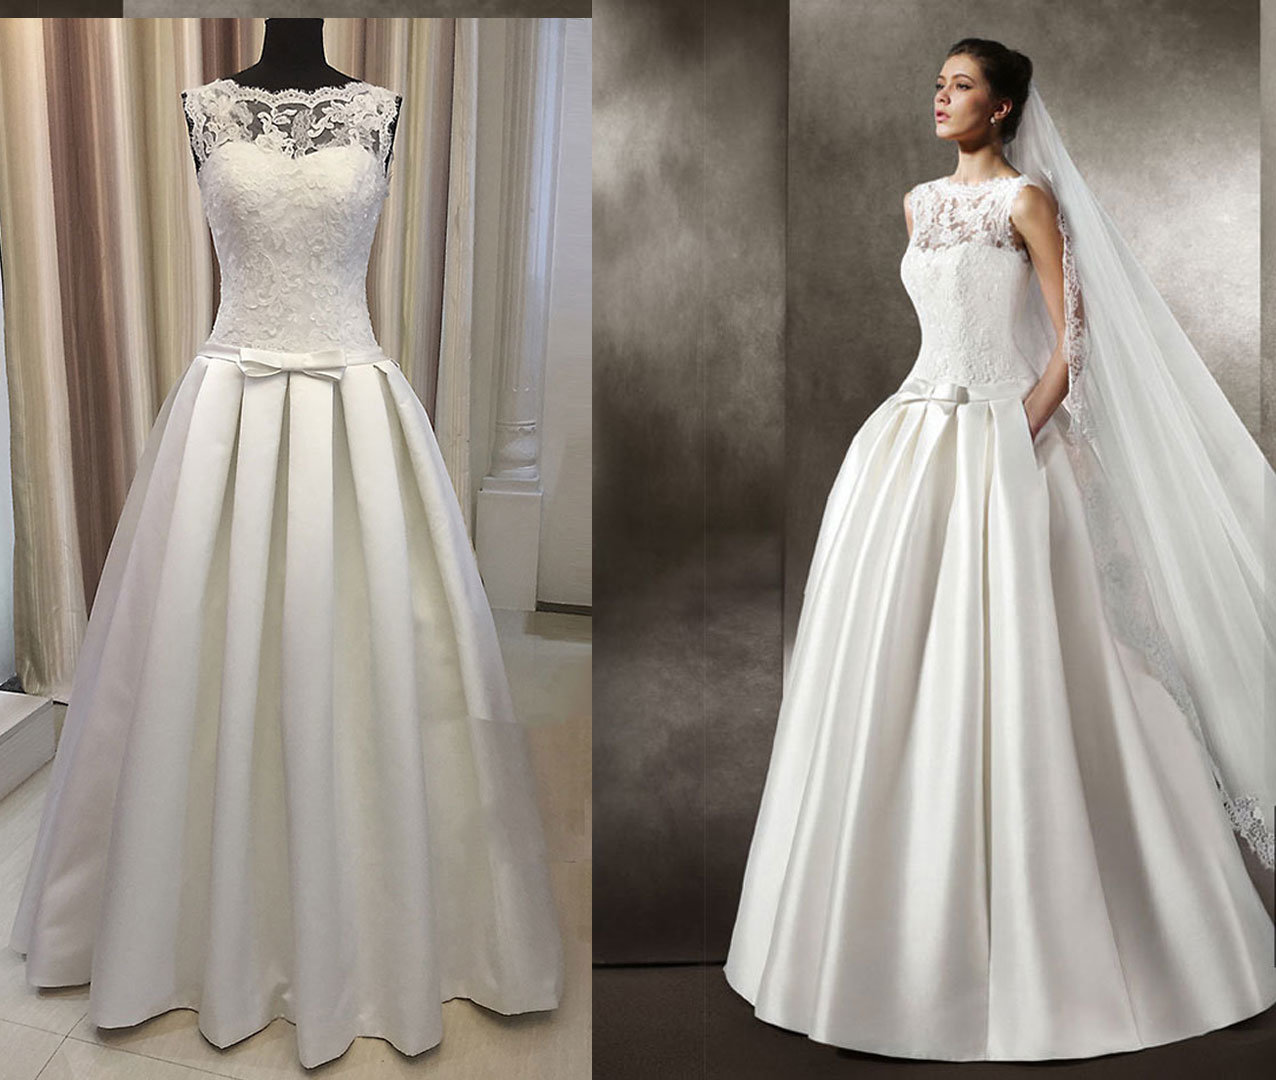 Satin 395 Pleat Floor Length Wedding Dress